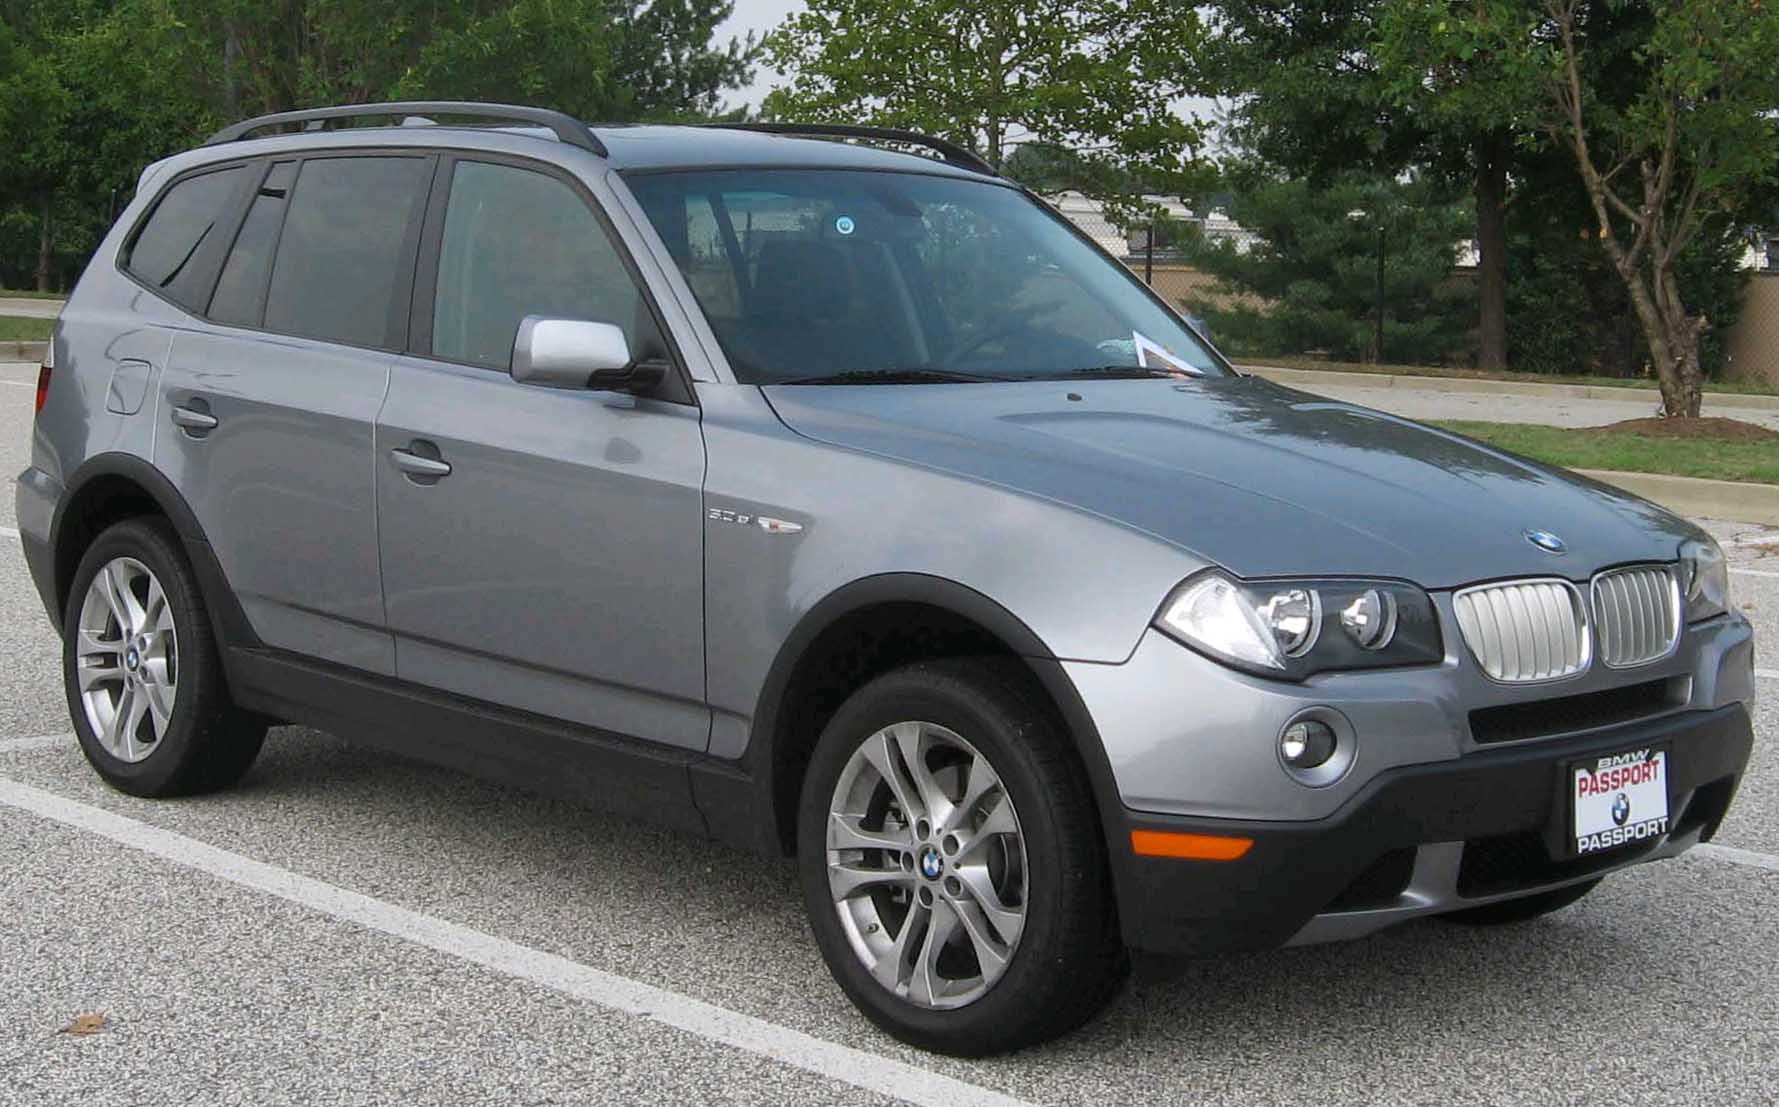 bmw x3 tractor construction plant wiki the classic vehicle and machinery wiki. Black Bedroom Furniture Sets. Home Design Ideas